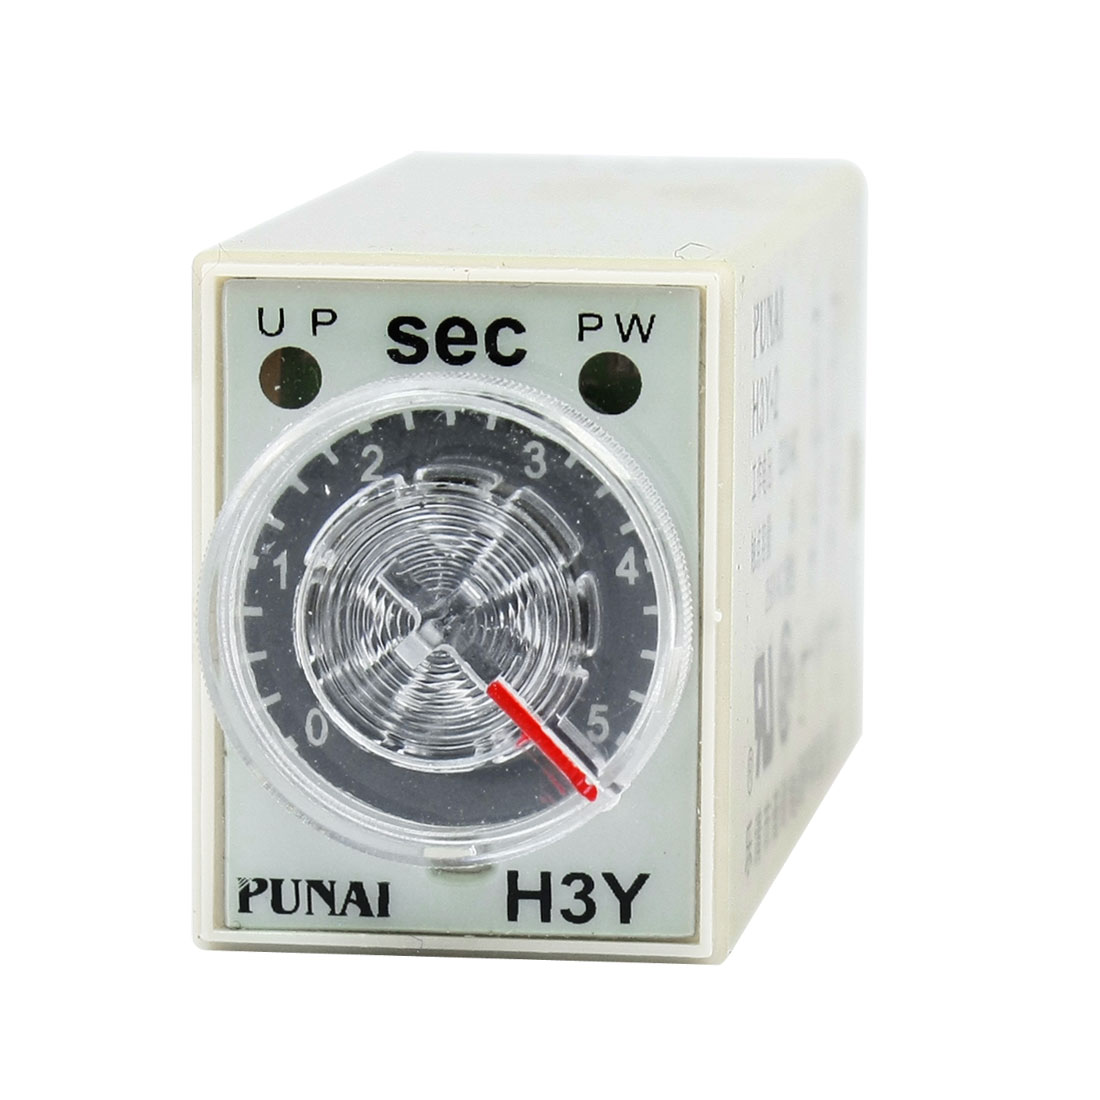 Adjustable 5s Seconds Timing Delay Range DPDT 220VAC H3Y-2 Time Relay